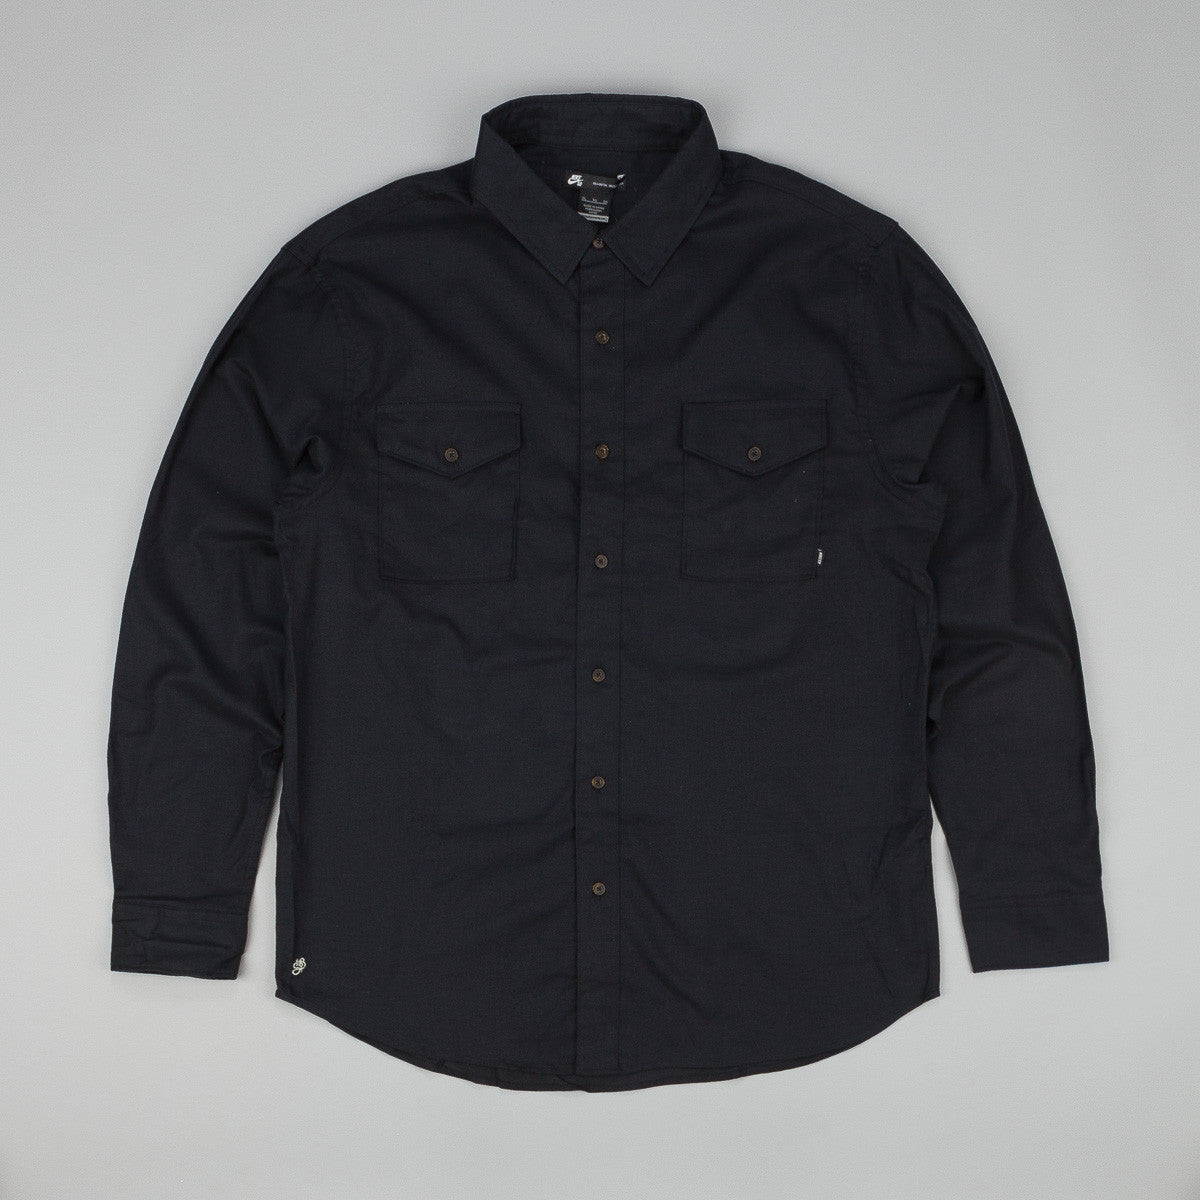 Nike SB Flagrant Flannel Long Sleeve Shirt